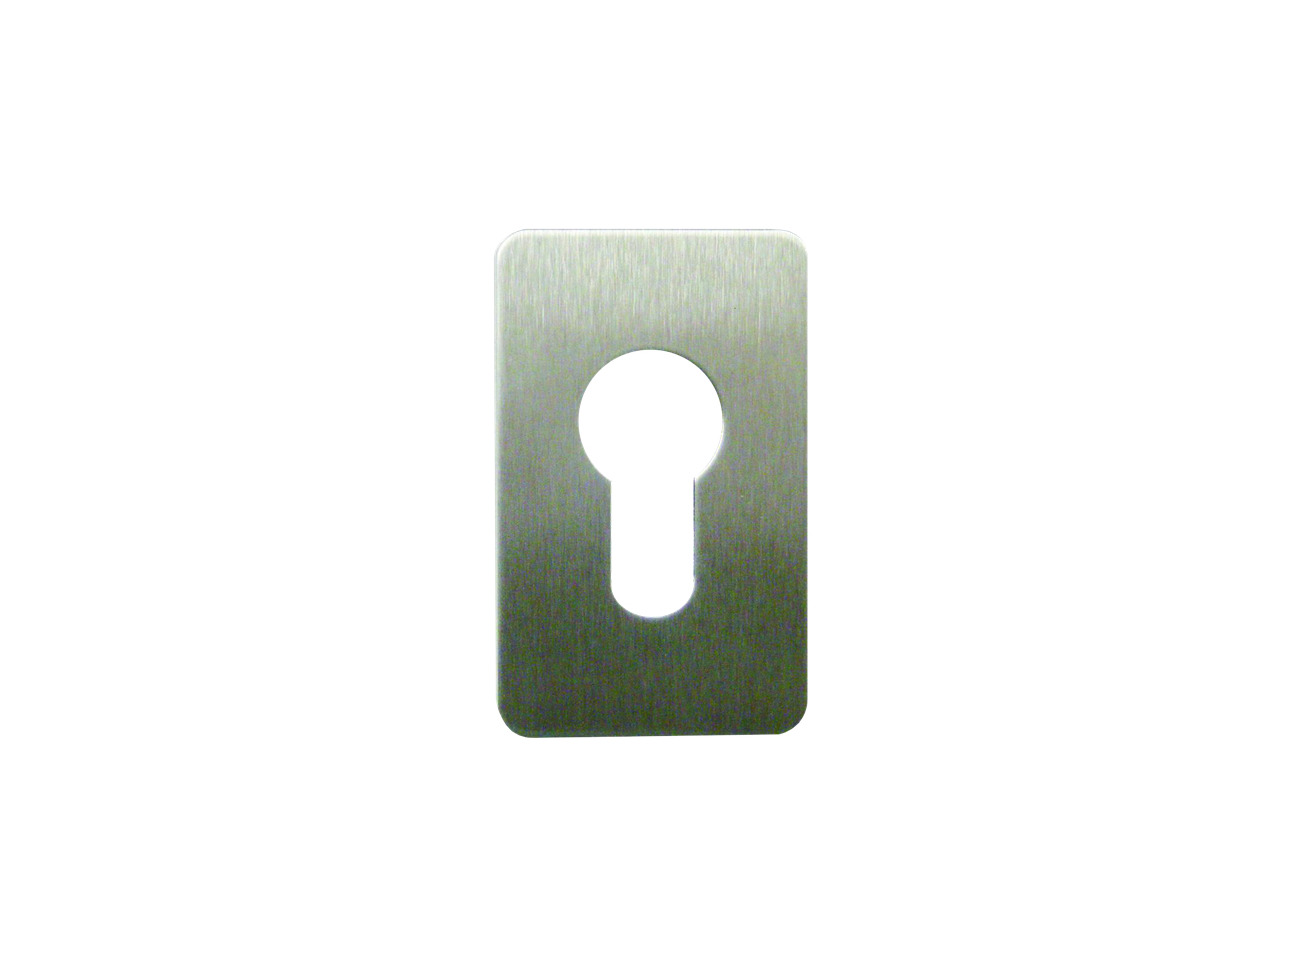 Stainless Steel SOUBER TOOLS EE3 Self Adhesive Euro Escutcheon